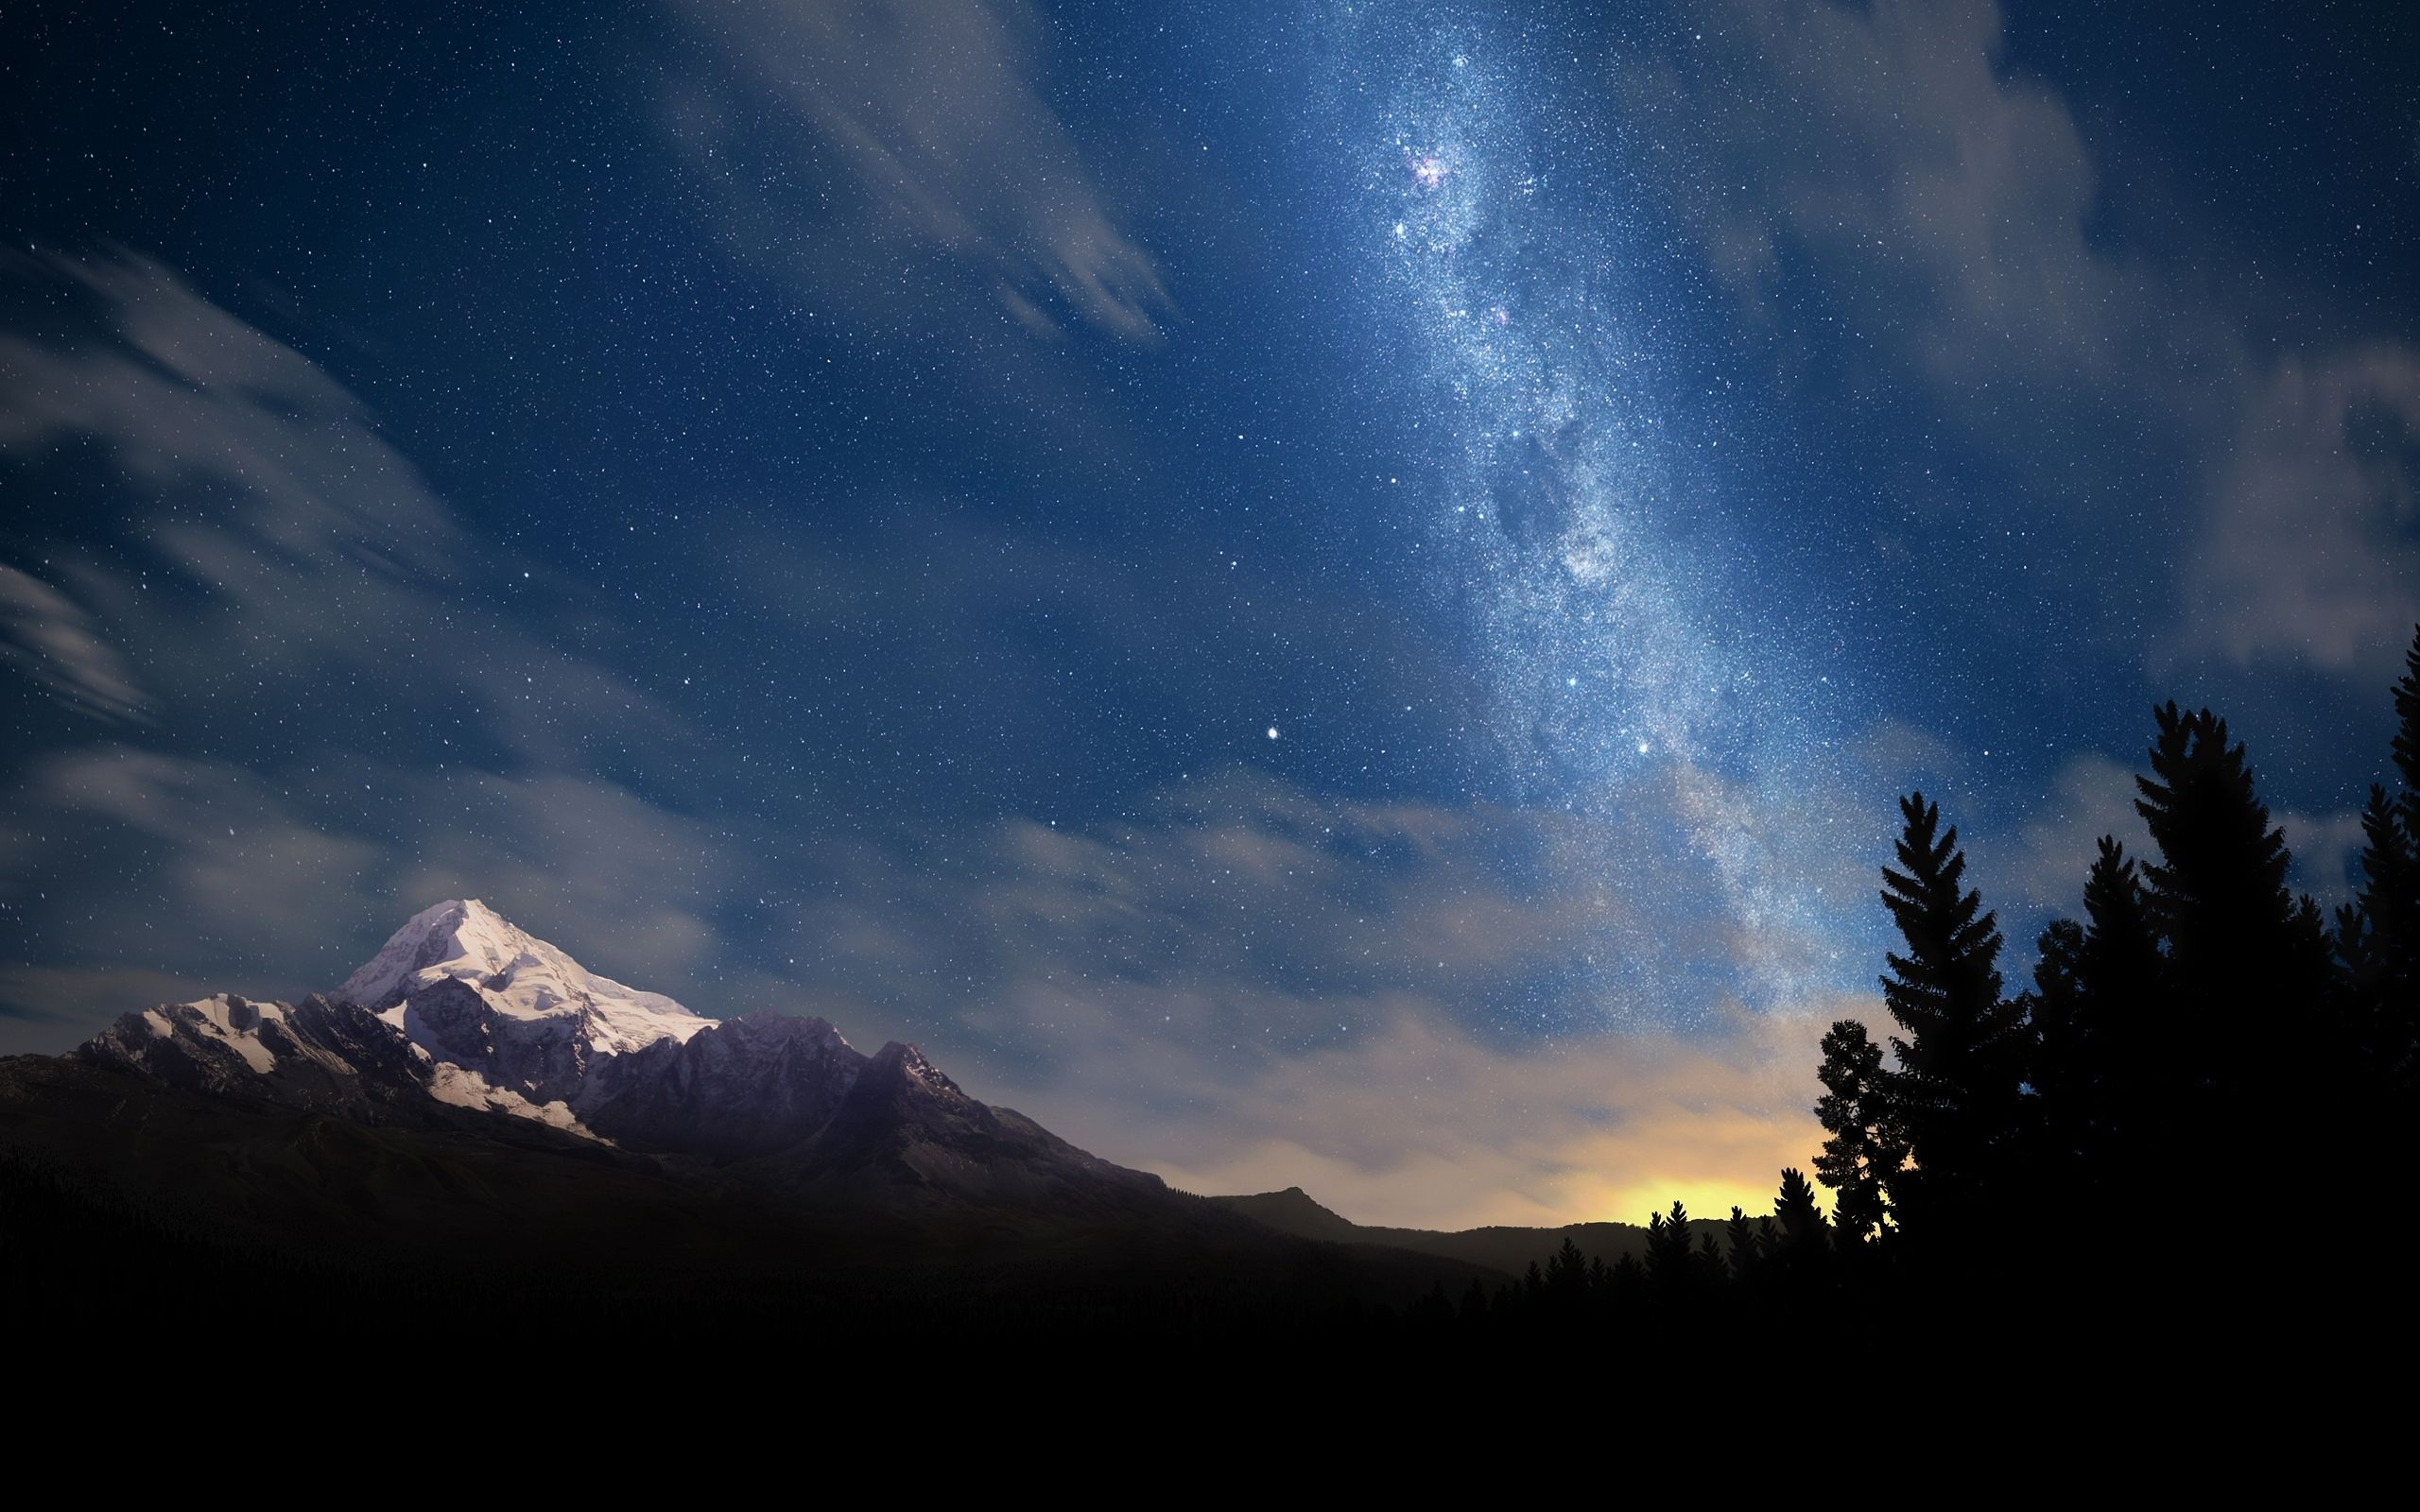 Night Mountain Wallpaper Background For Free Wallpaper